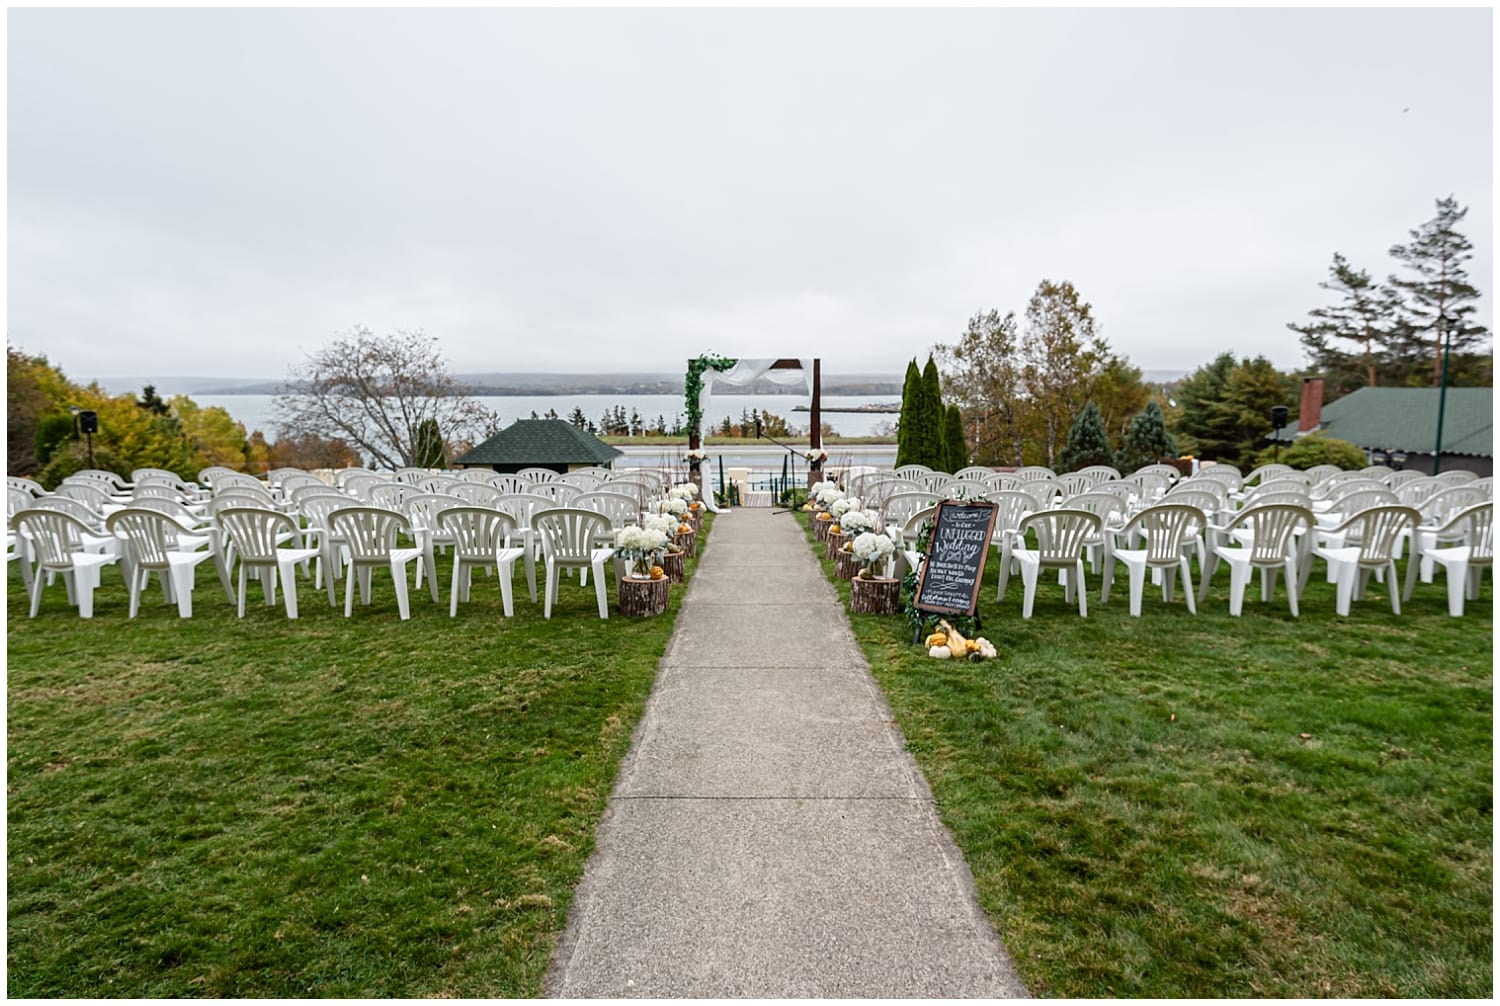 The wedding ceremony set up for a wedding at the Digby Pines Resort in Digby Nova Scotia.